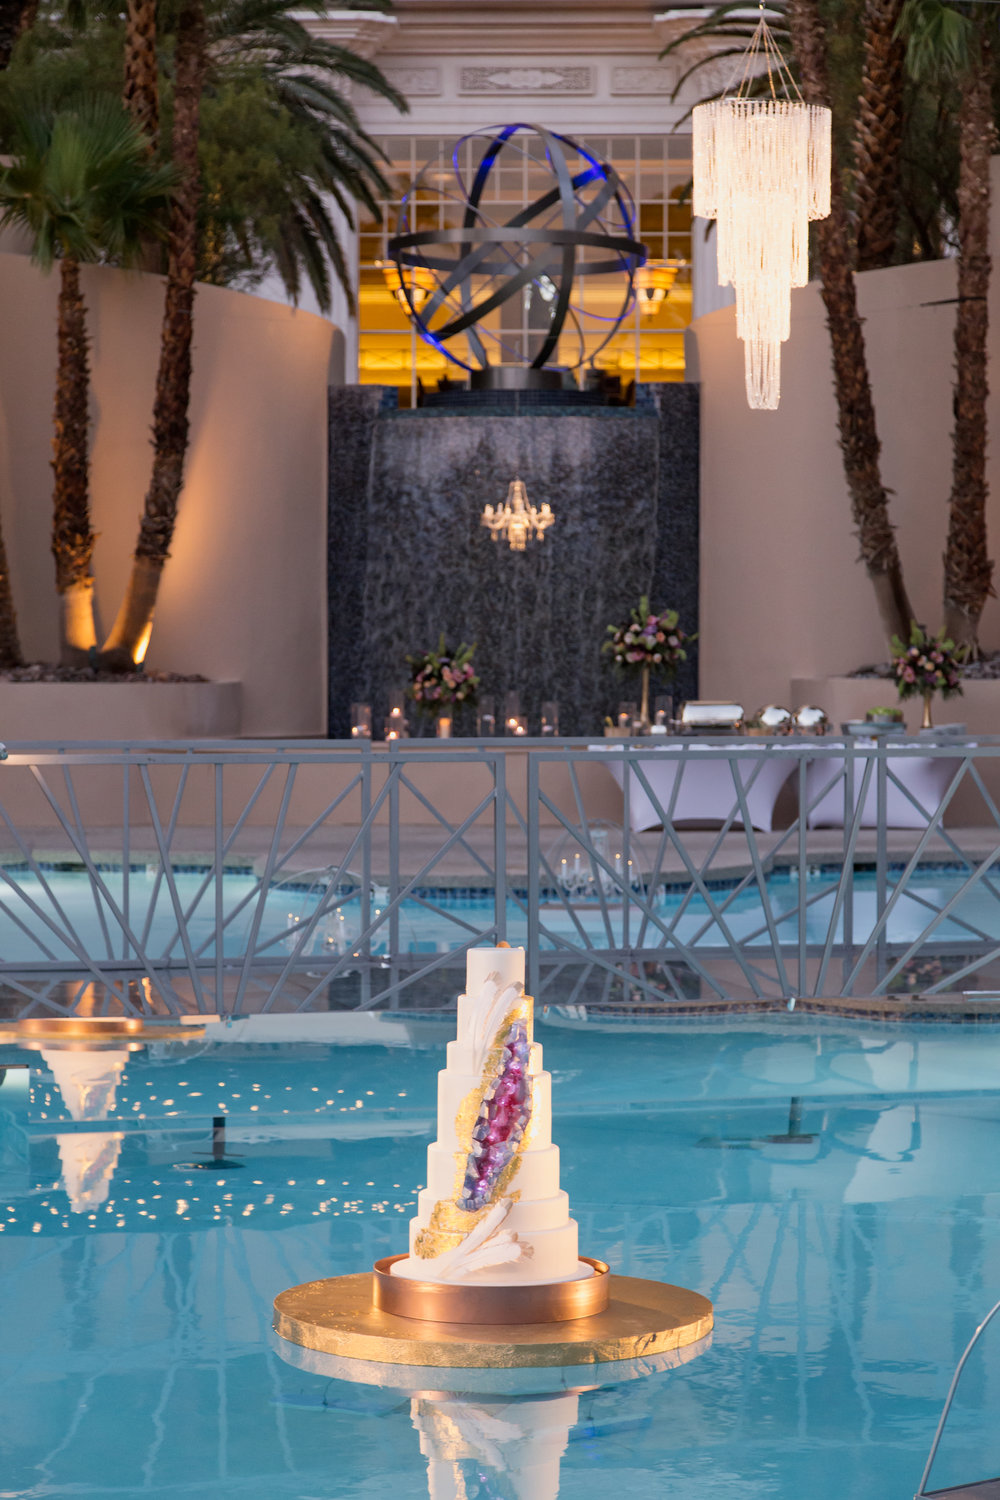 Floating wedding cake with geode design and chandeliers at poolside wedding in Las Vegas. Destination Wedding Planner  Andrea Eppolito  · Photos by  Adam Frazier Photography  · Floral and Decor by  Destinations by Design  ·  Lighting by  LED Unplugged  · Venue  · Invitations  Ceci New York   ·  Menus by  Alligator Soup